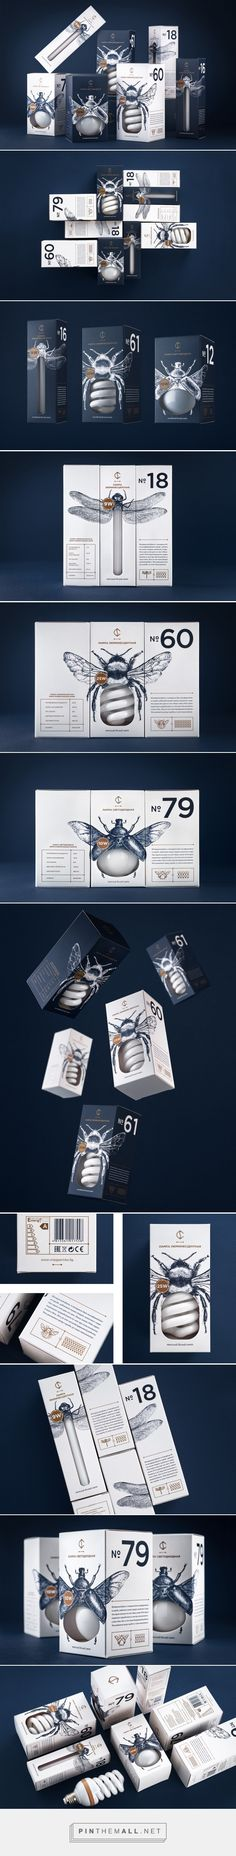 Project updated! CS Light Bulbs packaging design by Angelina Pischikova - http://www.packagingoftheworld.com/2017/03/cs-light-bulbs.html